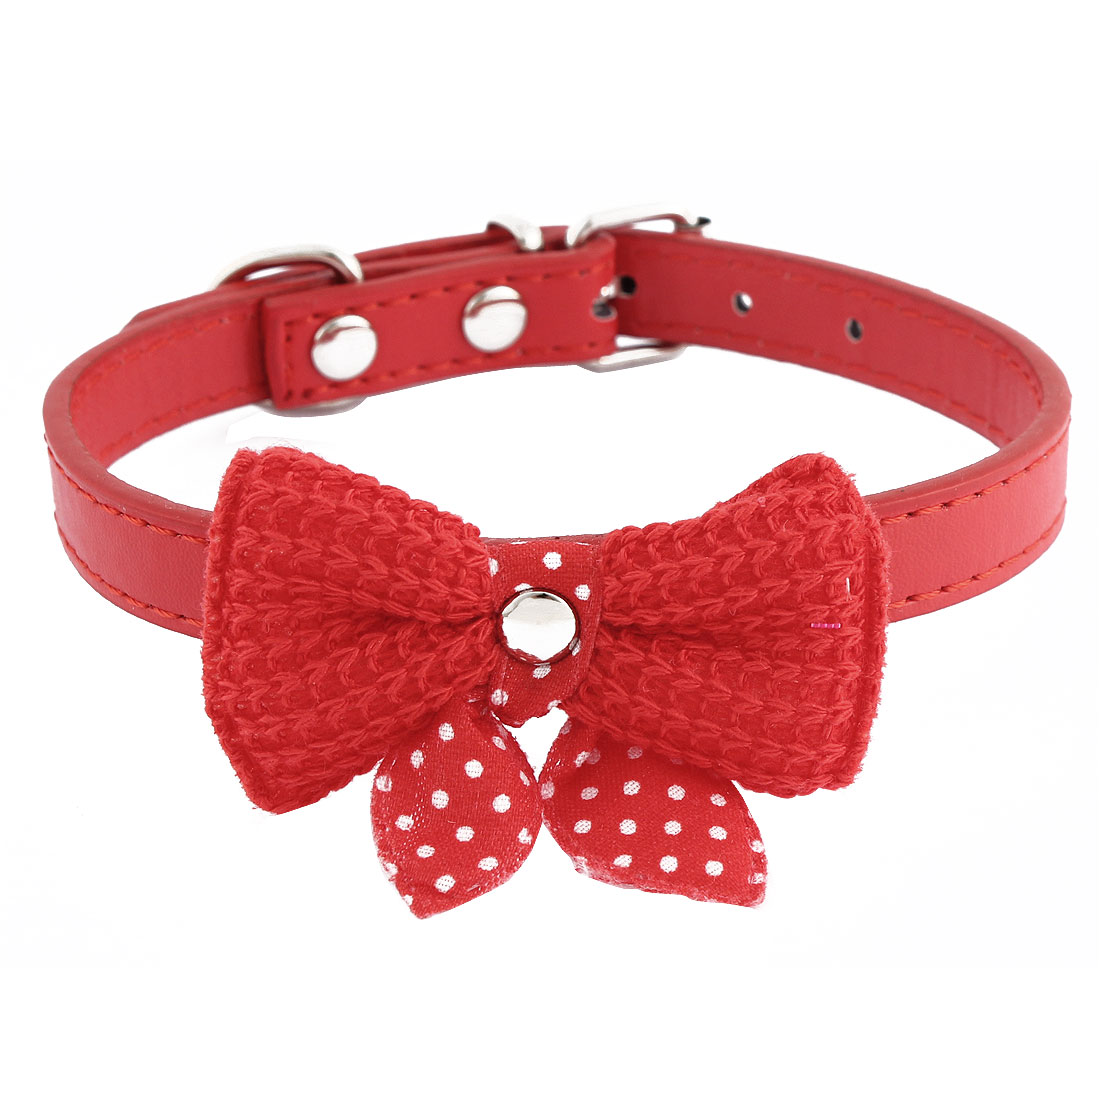 Single Pin Buckle Bow Bowknot Detail Pet Dog Kitty Collar 27-33cm Red